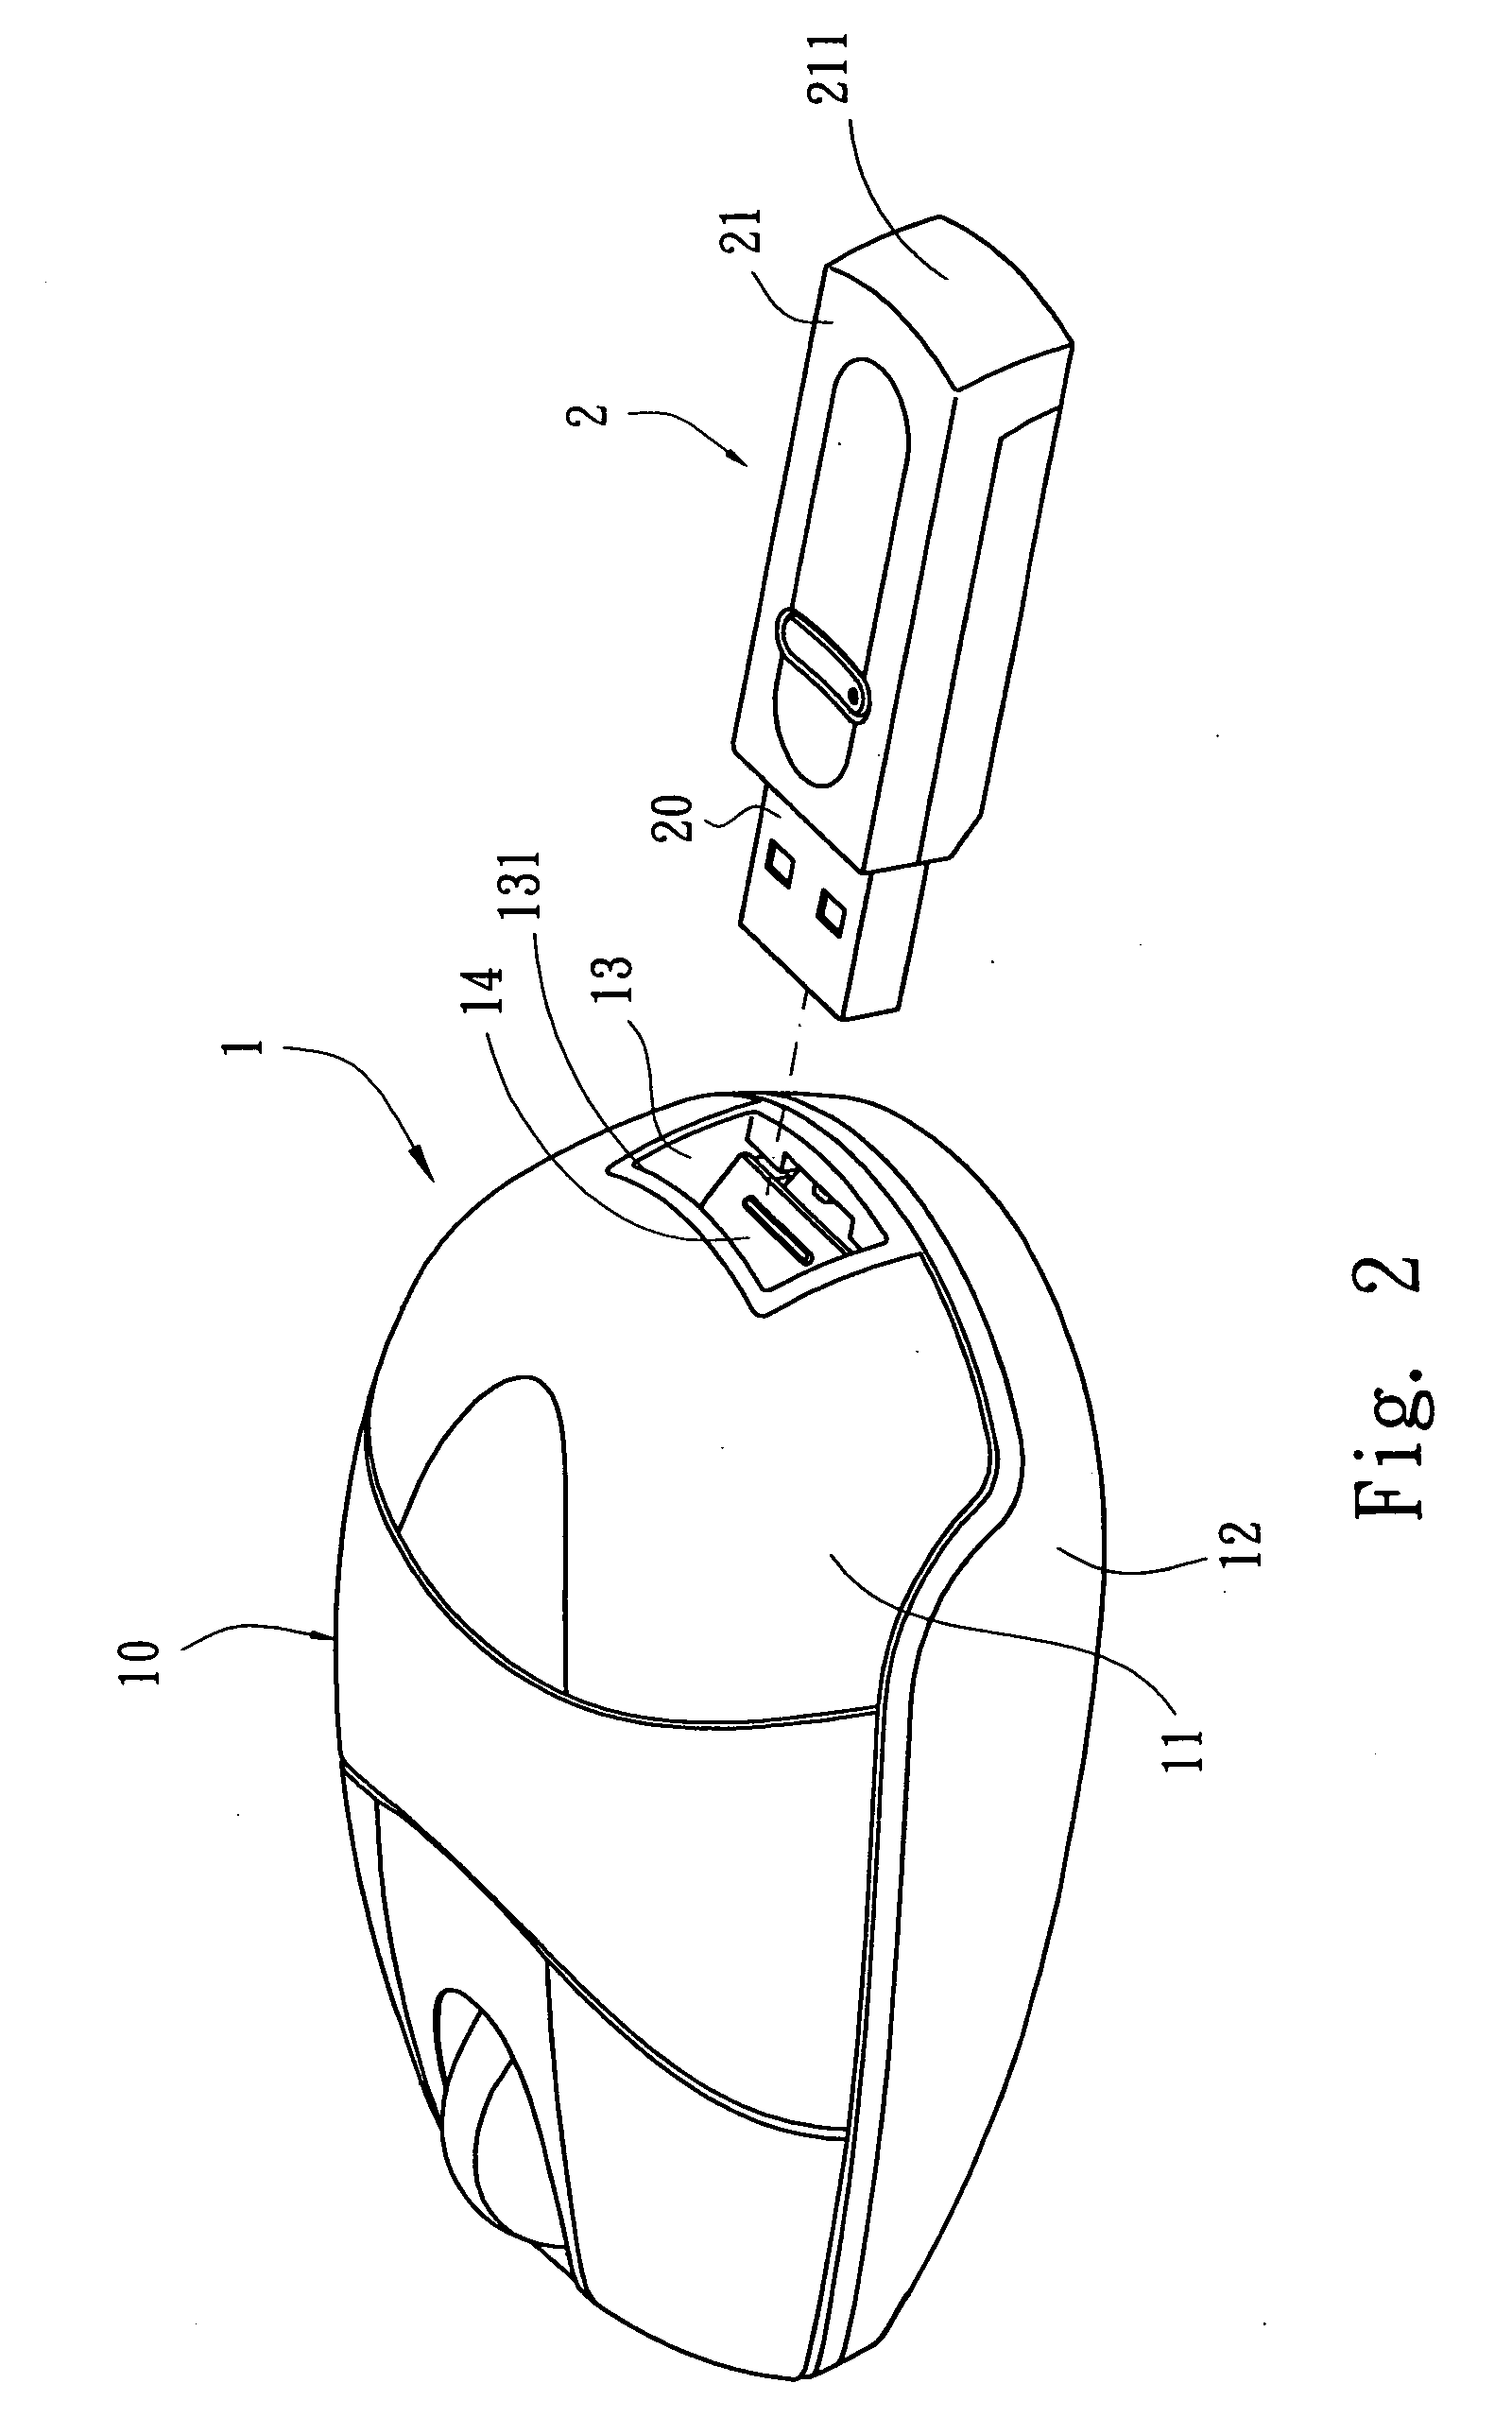 patent us20070115259 - receiving structure for receiver of wireless mouse